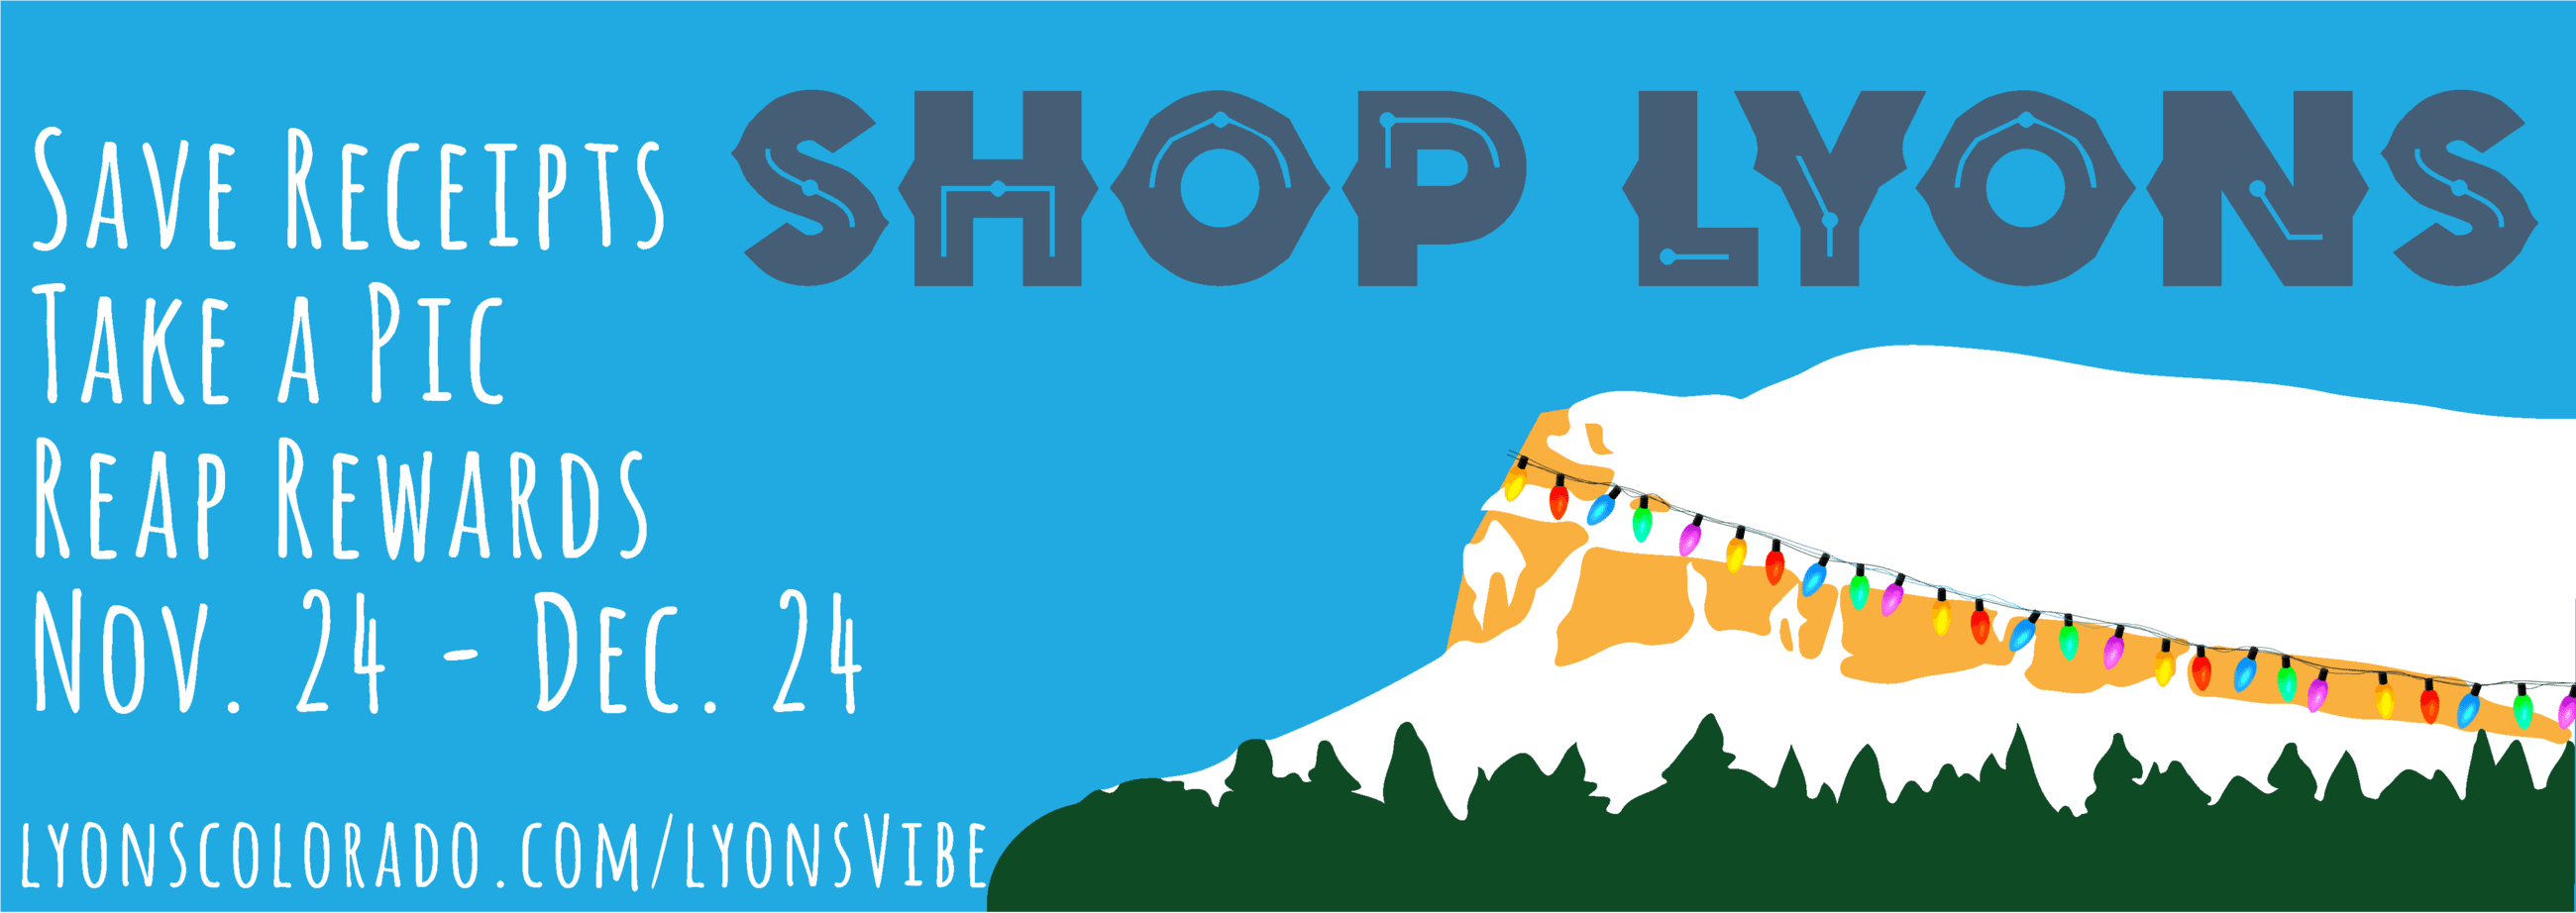 Shop Lyons, Nov. 24 - Dec. 24